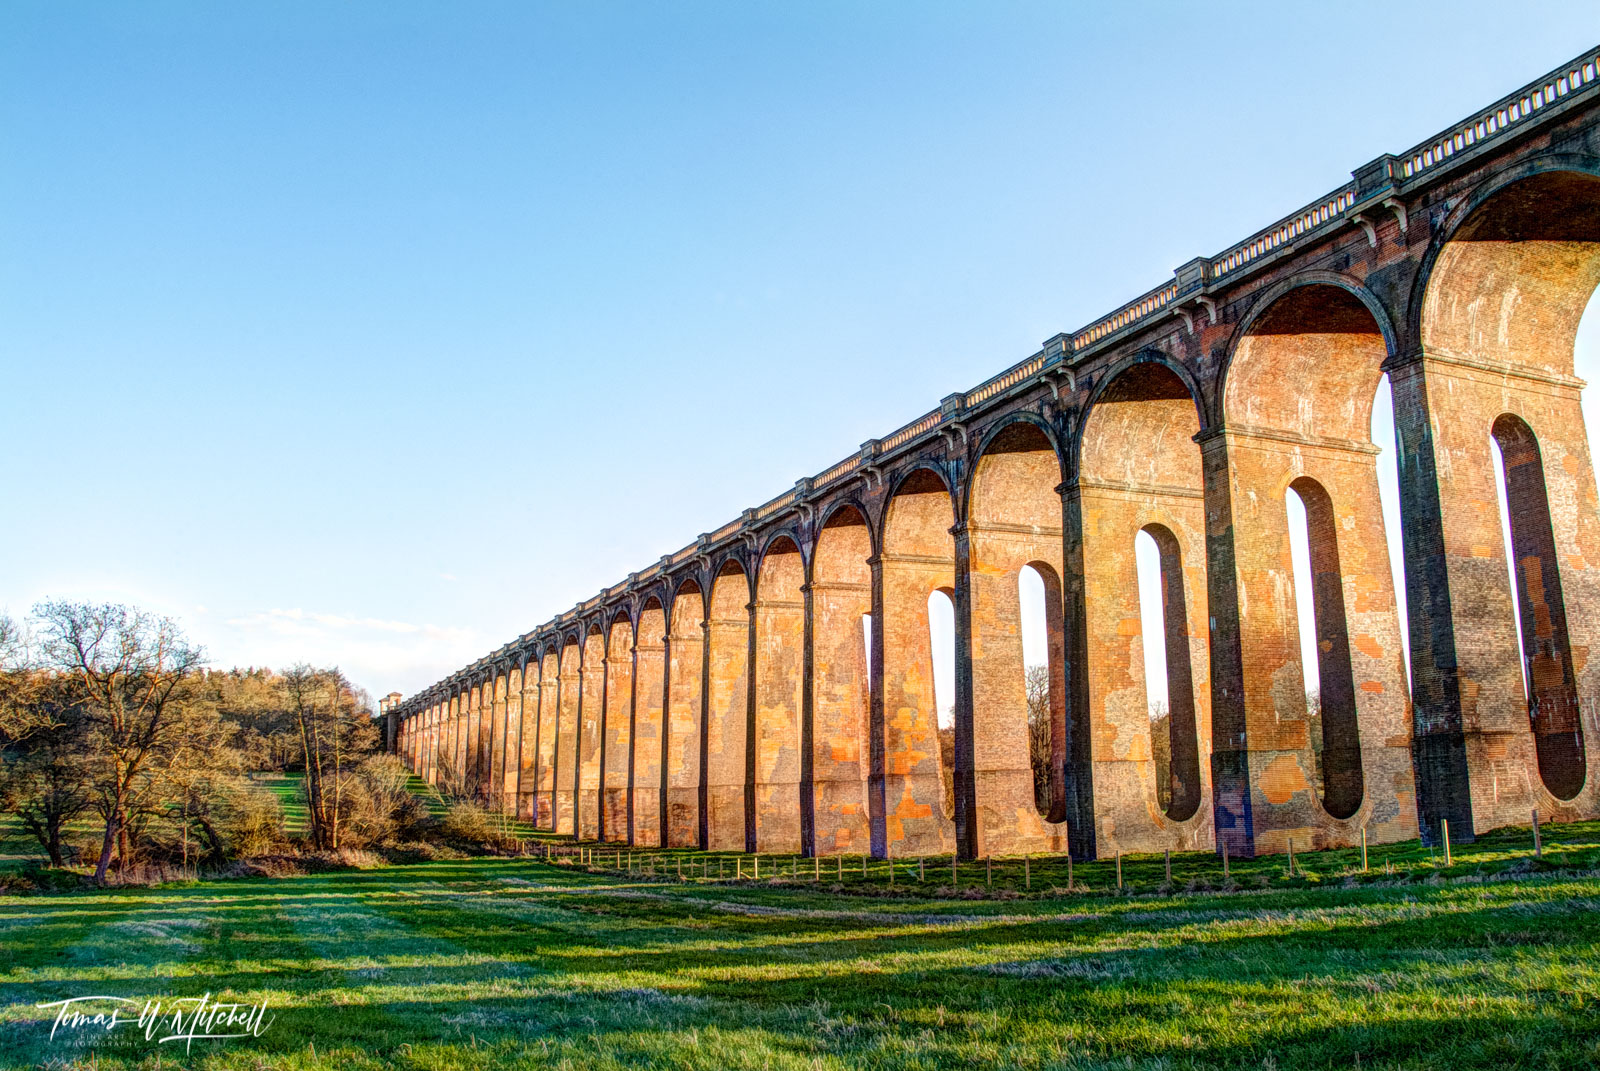 limited edition, gallery quality, fine art, prints, photograph, ouse valley viaduct, sussex, england, balcombe, london, brighton, railway line, river ouse, orante, elegant, britain, bricks, viaduct, t, photo